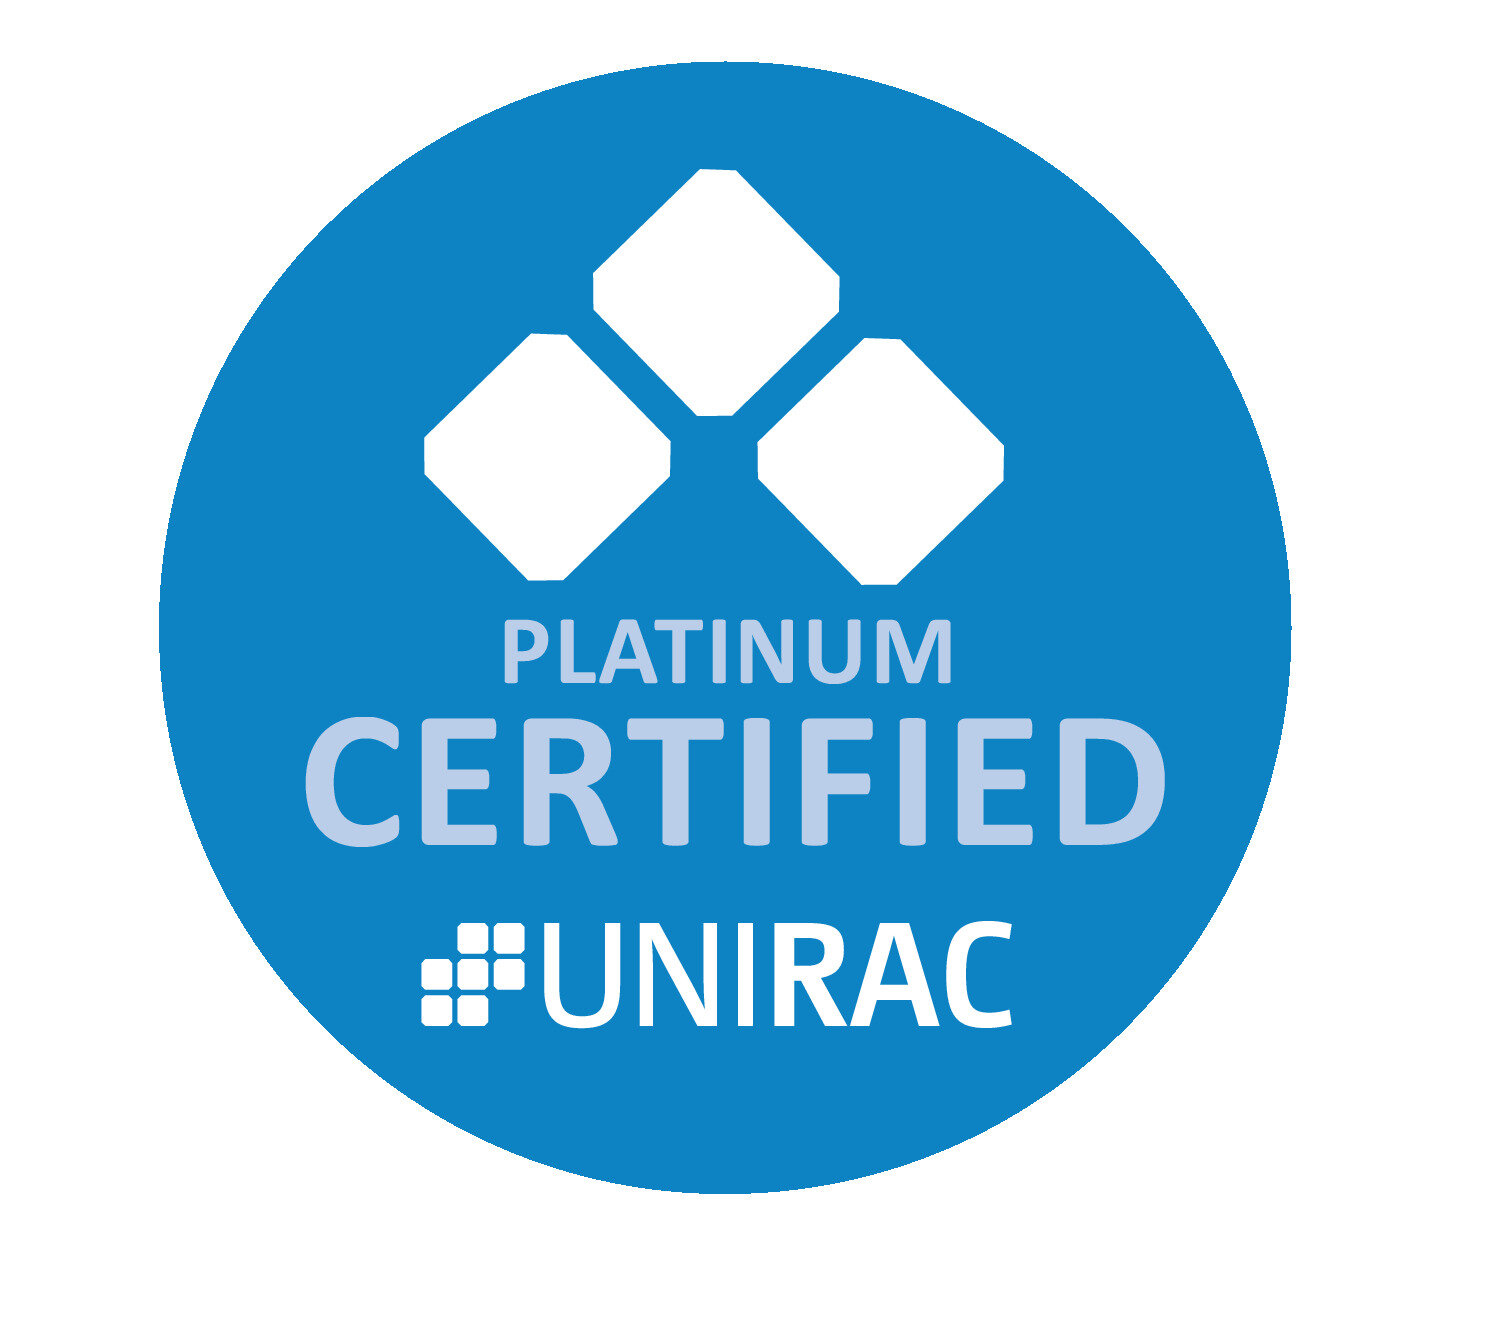 platinumcertified.jpg